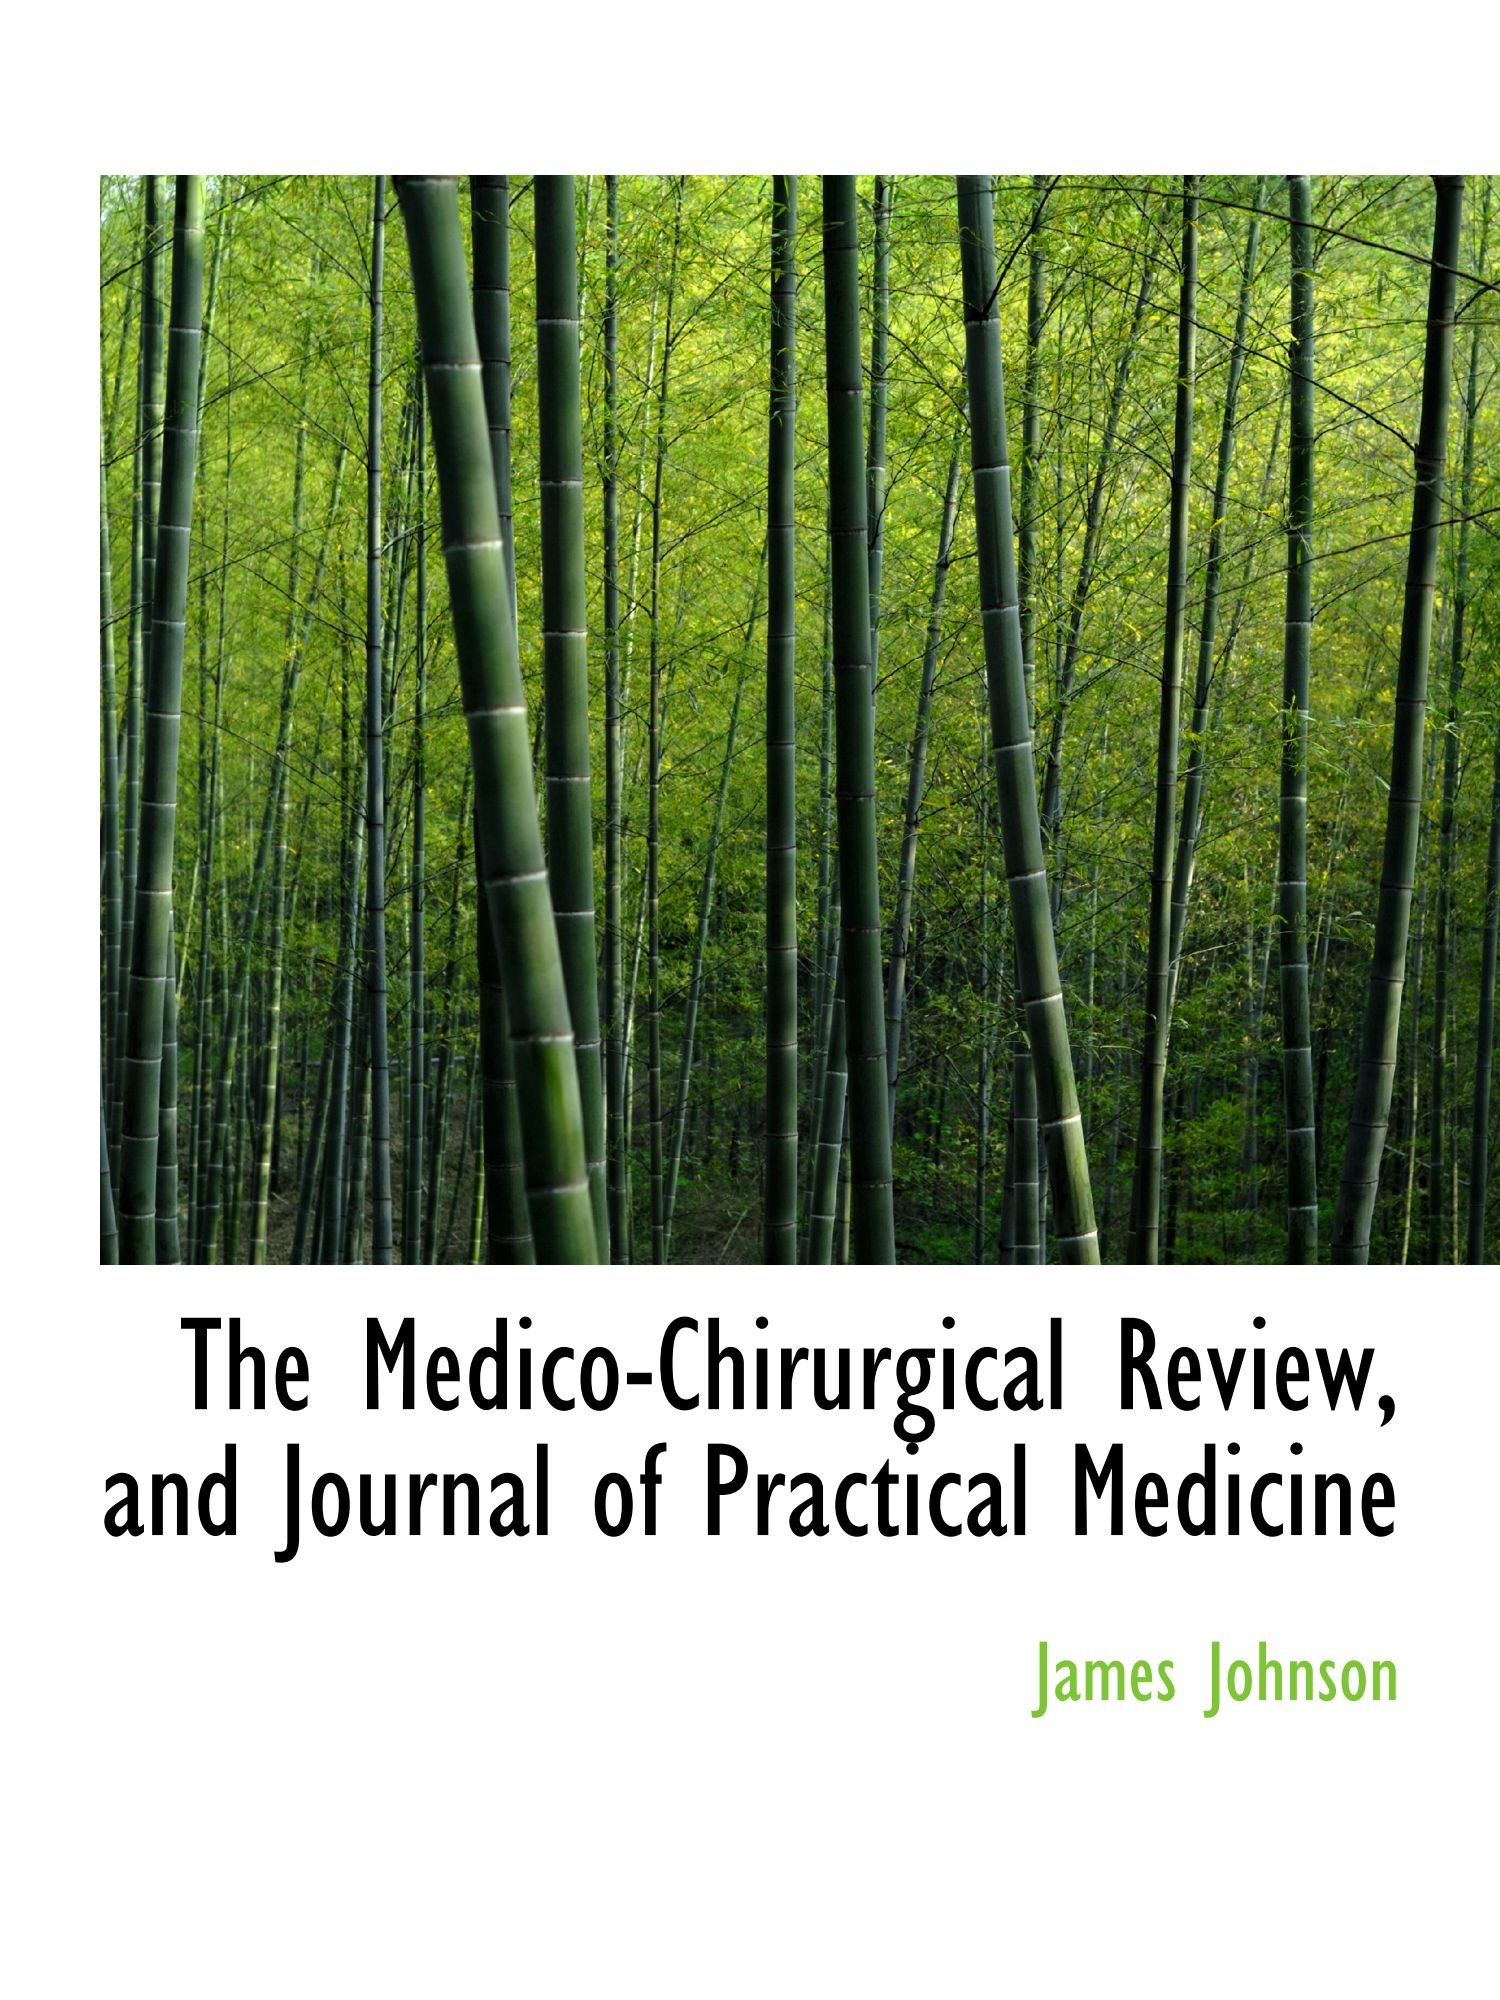 The Medico-Chirurgical Review, and Journal of Practical Medicine PDF